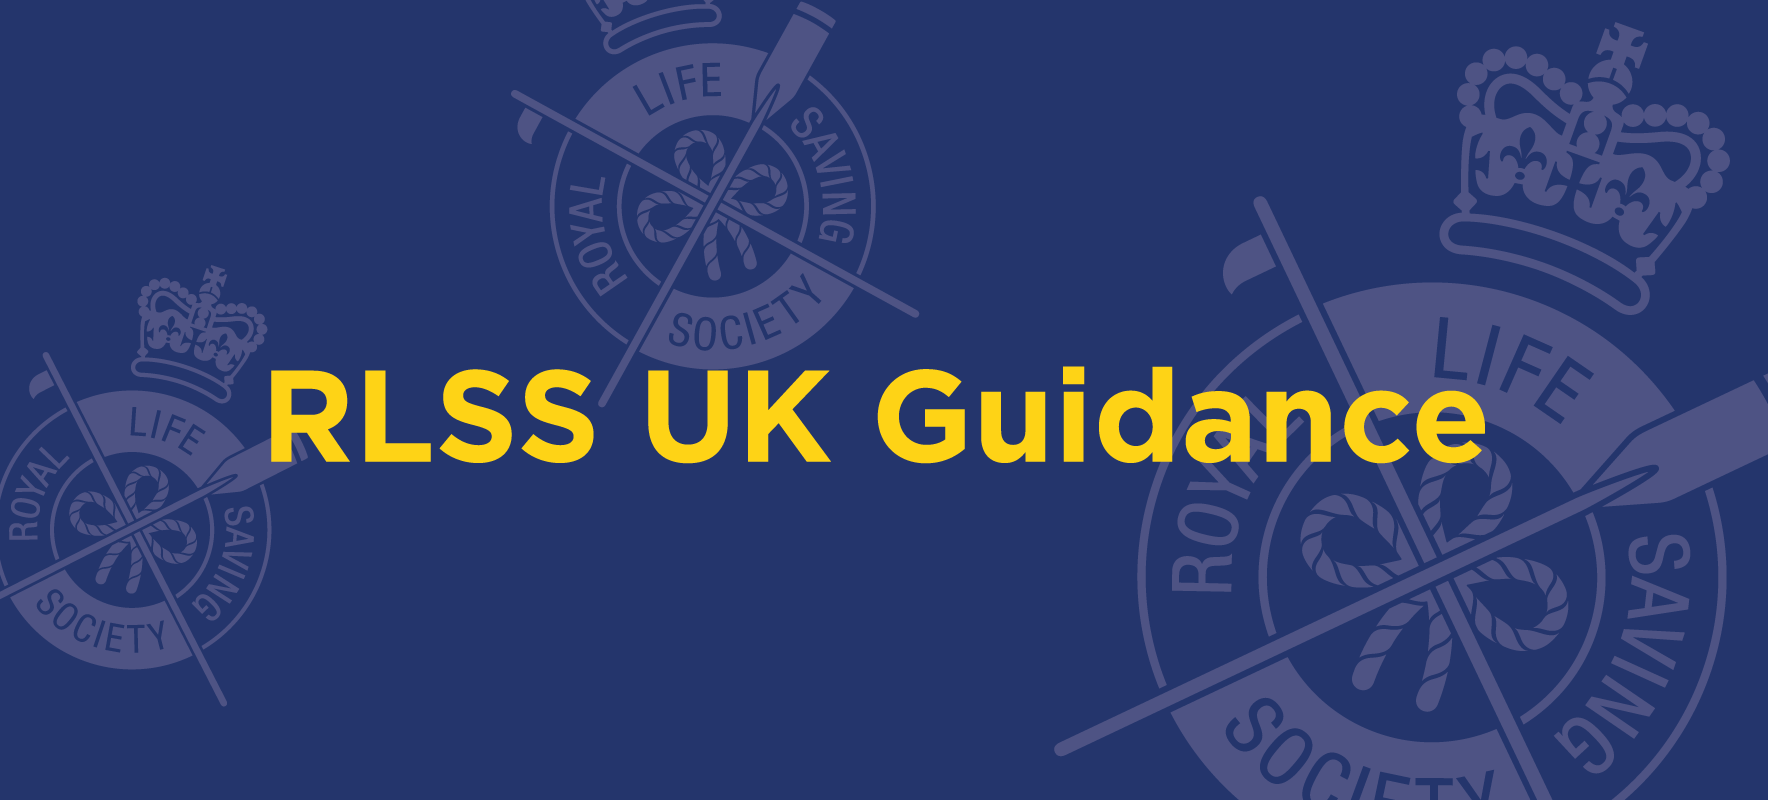 RLSS UK is working with industry experts to prepare clear guidance for safety, supervision and training after lockdown.